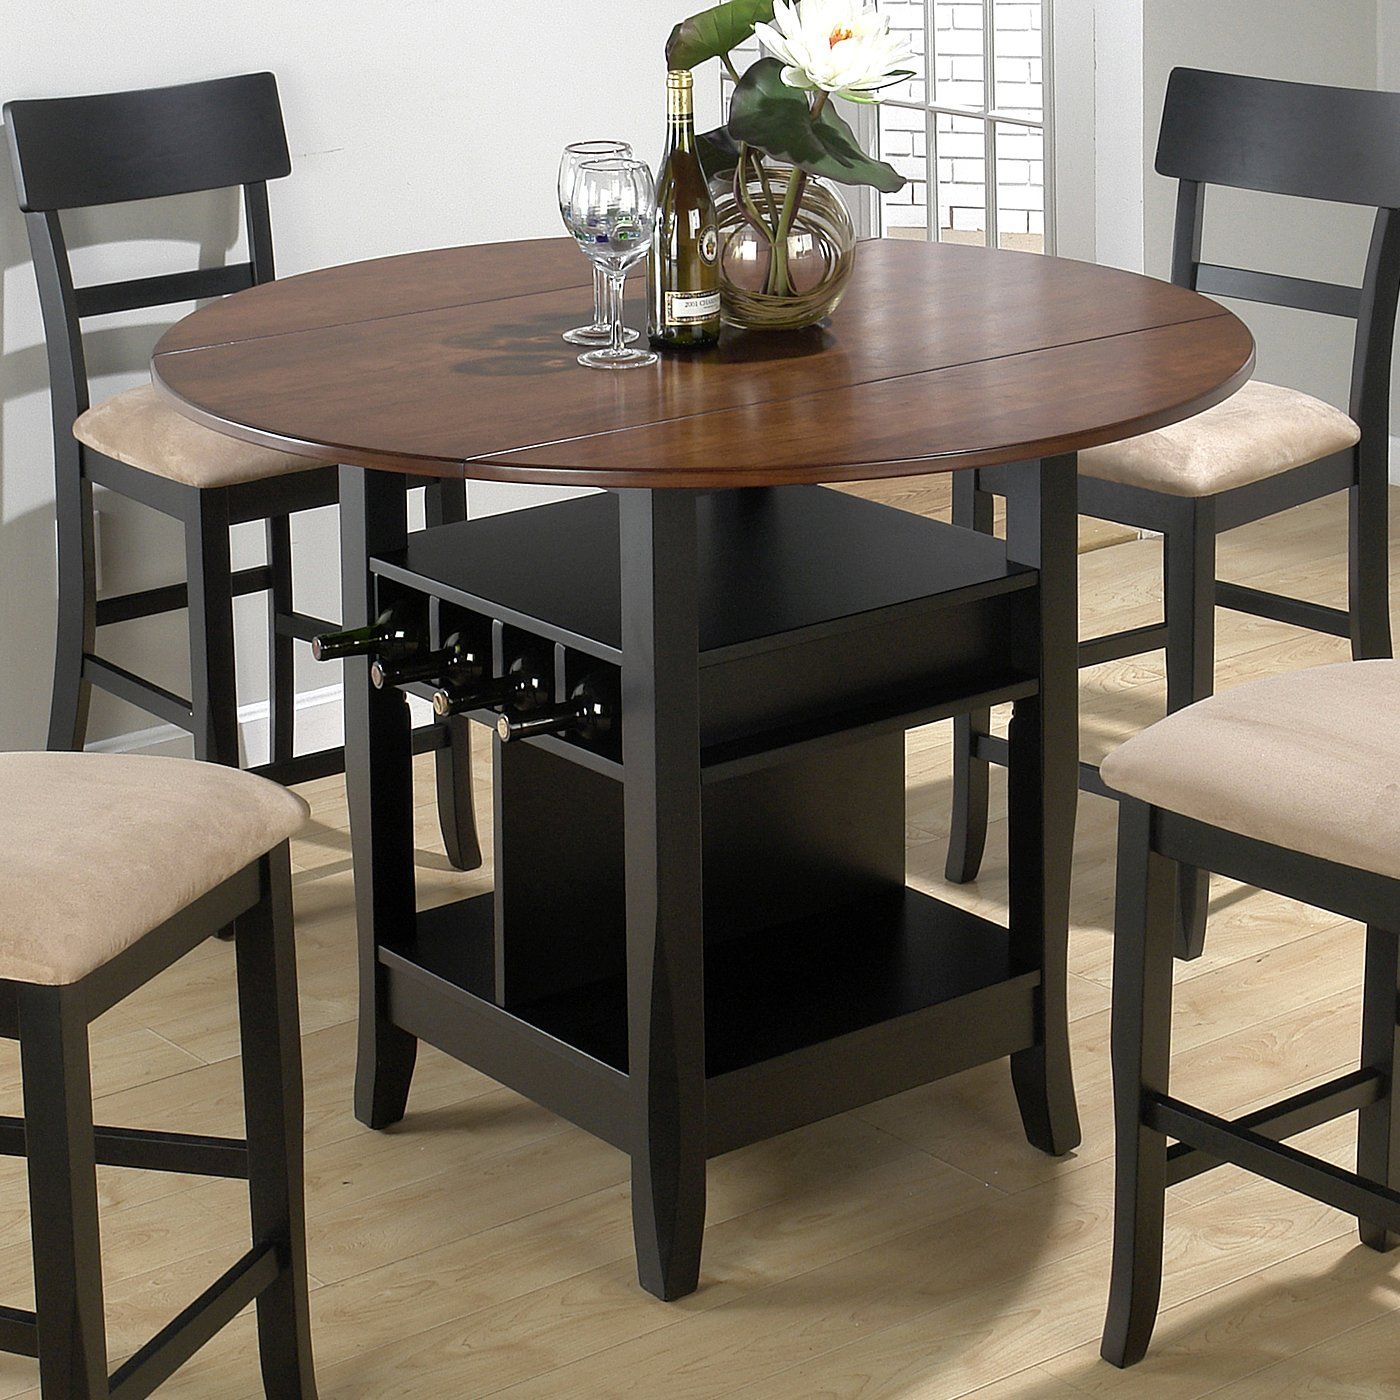 Jofran 218 48 Counter Height Dining Table | ATG Stores